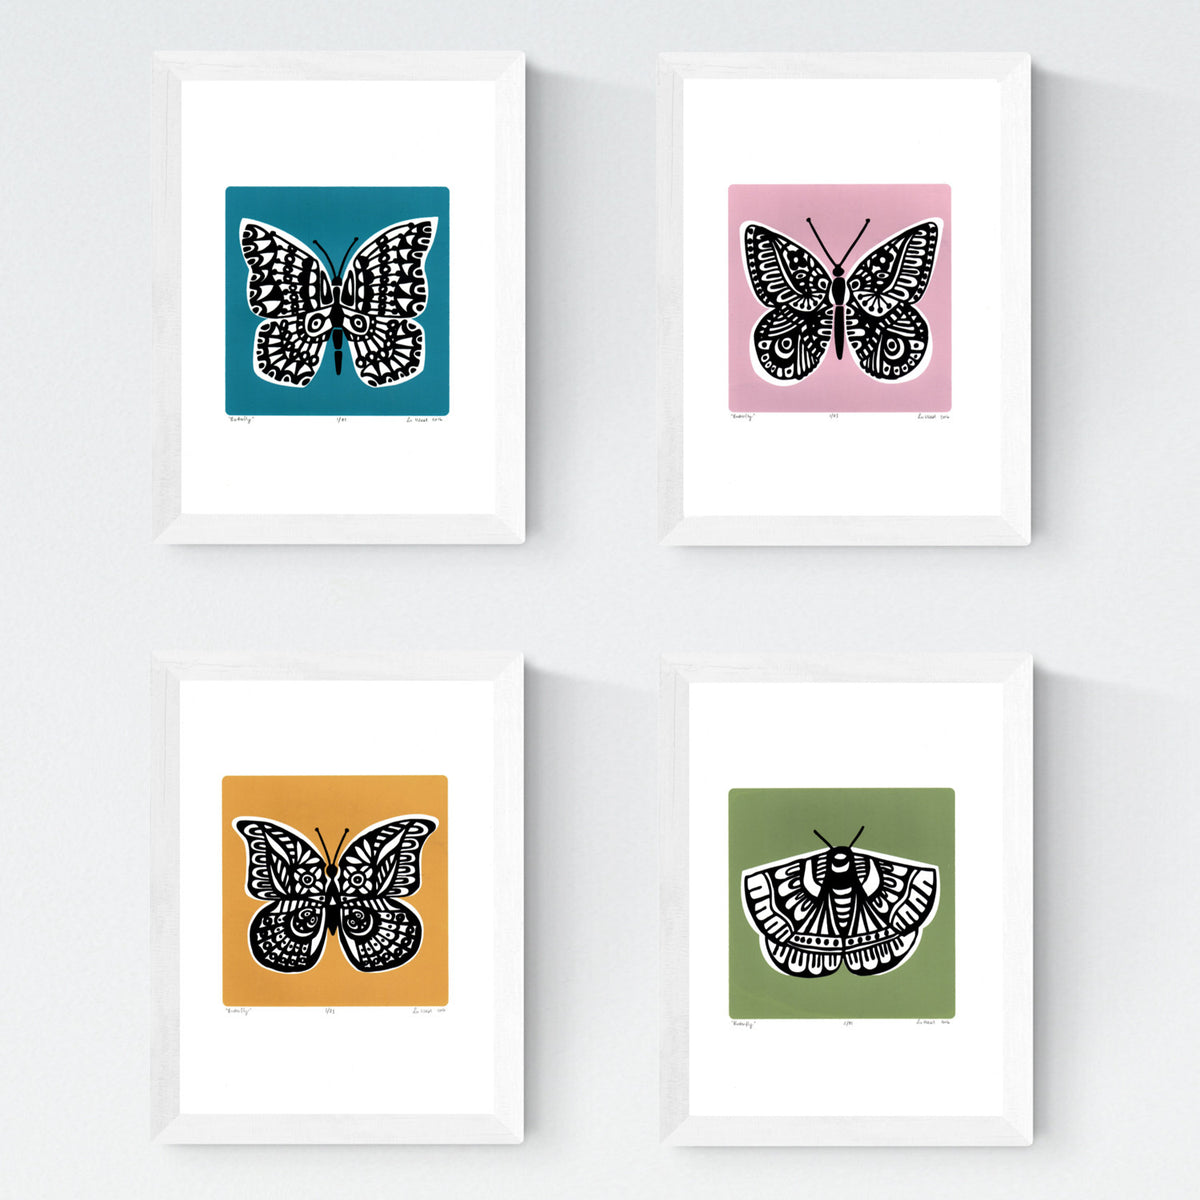 Set of 4 framed limited edition Butterfly silkscreen prints in slate teal, powder pink, saffron yellow and sage green. Illustrated in a simple, Scandinavian style and printed by hand.